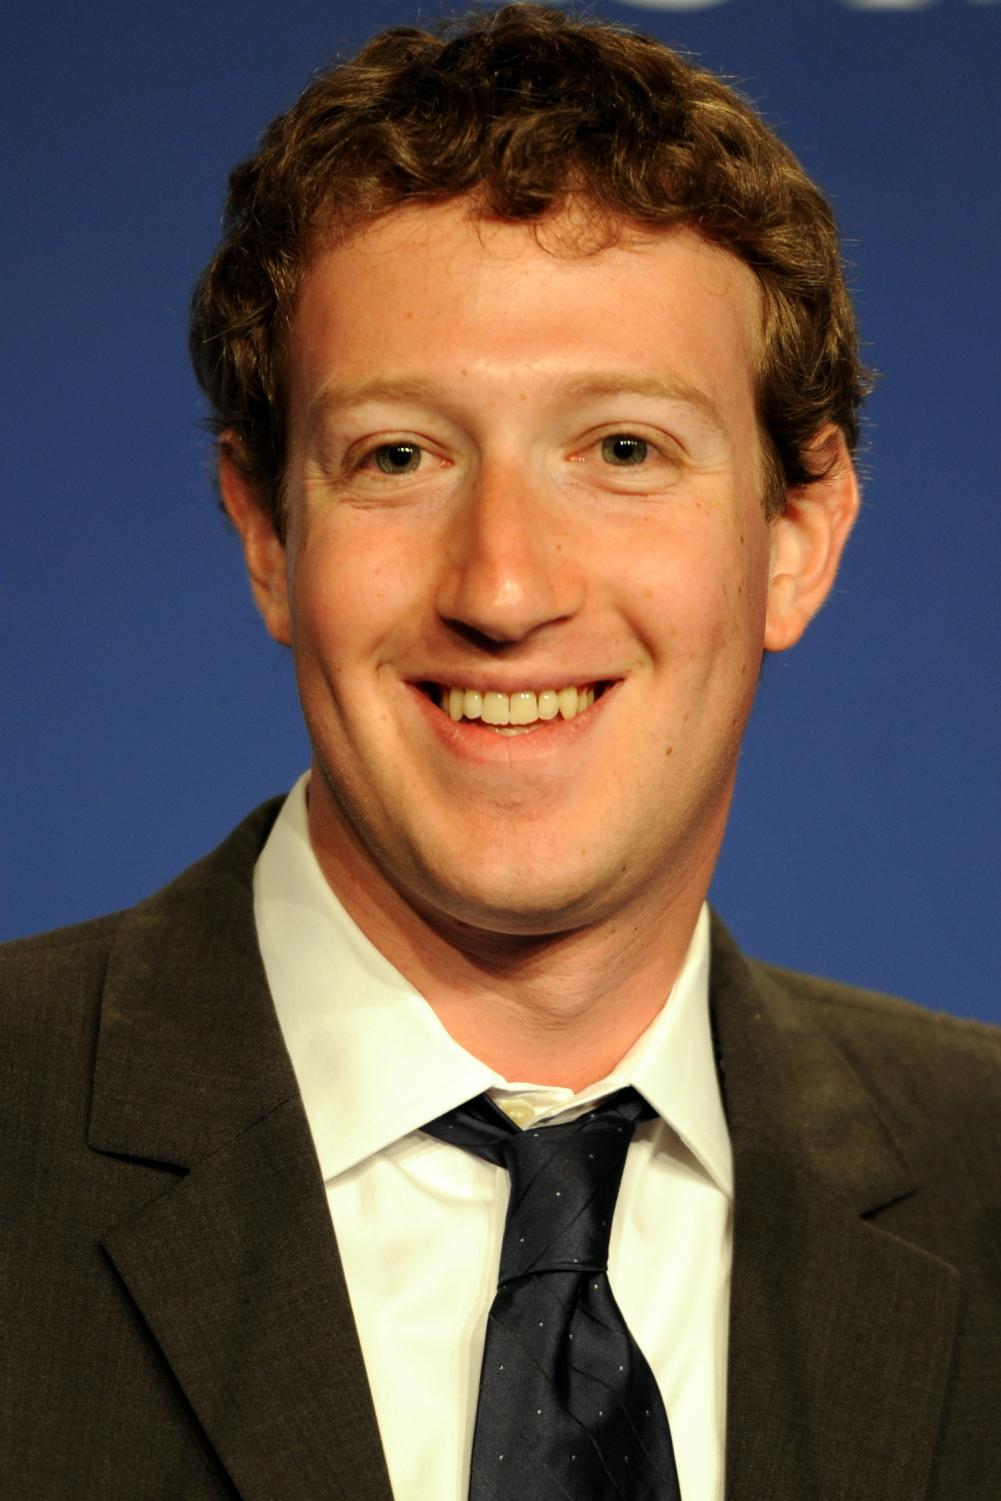 Mark Zuckerberg, Founder & CEO of Facebook, at the press conference about the e-G8 forum during the 37th G8 summit in Deauville, France. https://creativecommons.org/licenses/by/3.0/deed.en